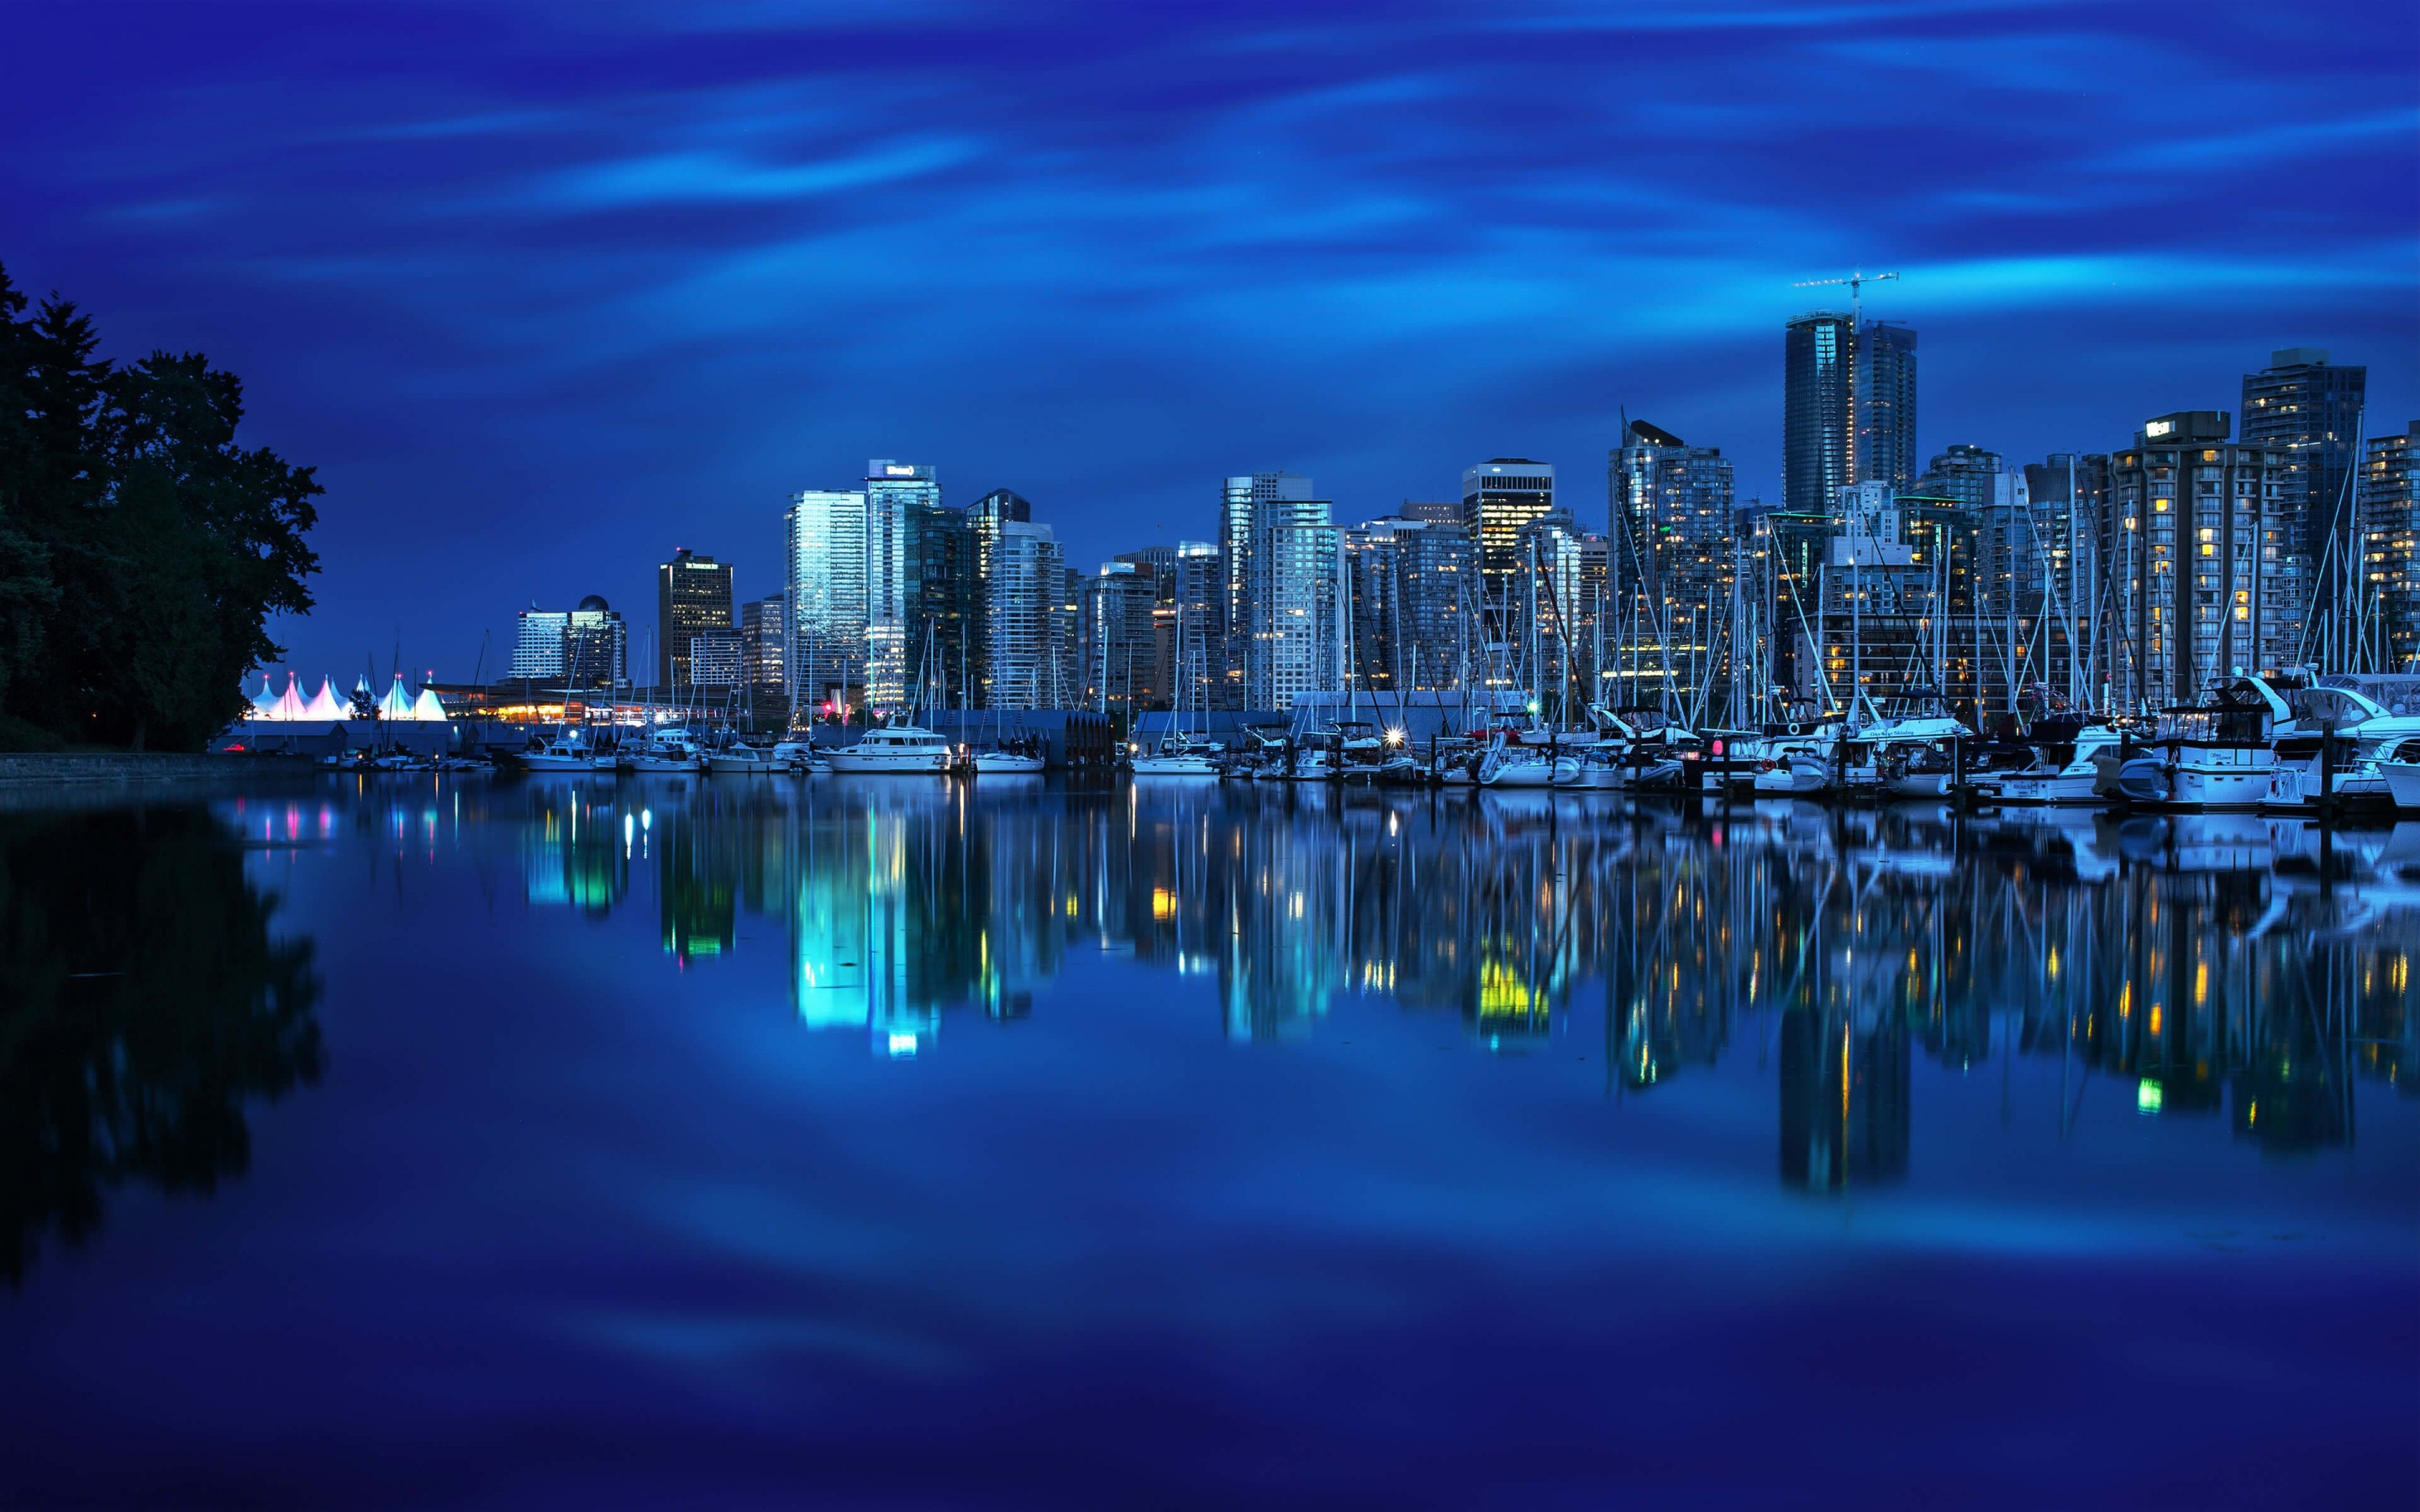 Coal Harbour Marina, Vancouver Wallpaper for Desktop 2880x1800